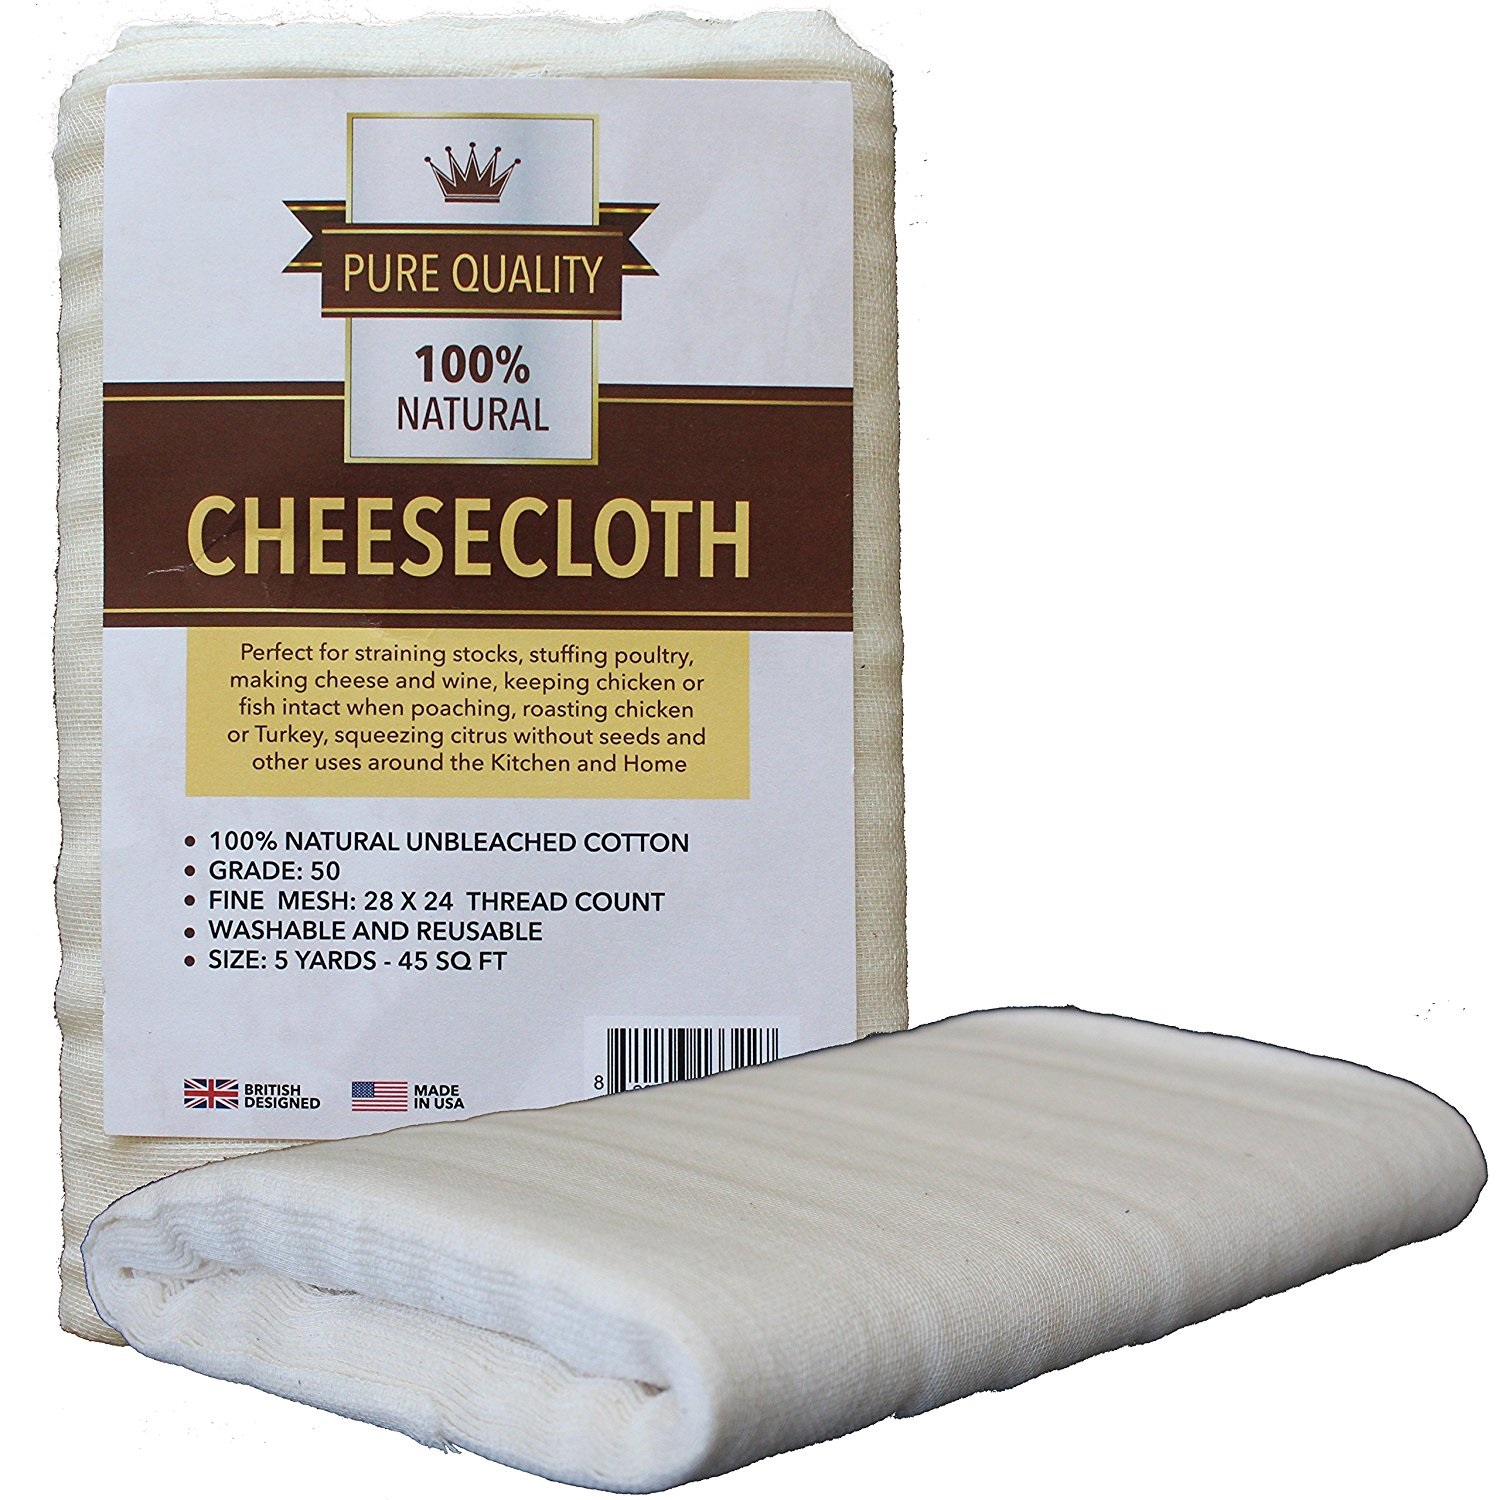 Grade 50 Cheesecloth 45 Sq Feet